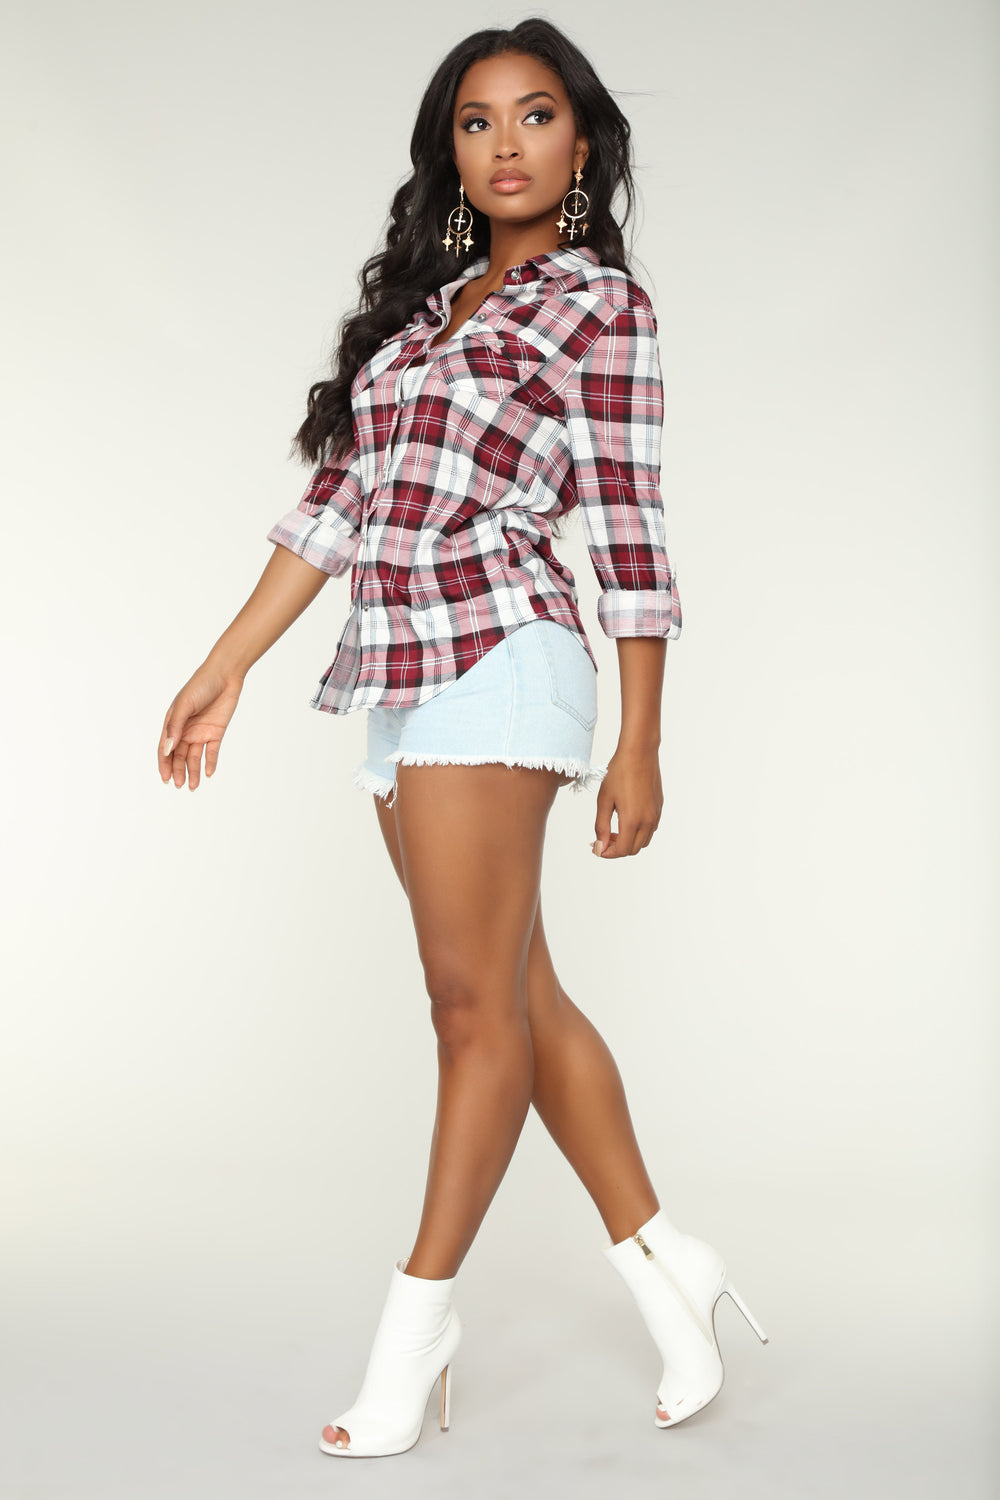 Lounge Lover Burgundy Plaid Top - Burgundy/Combo